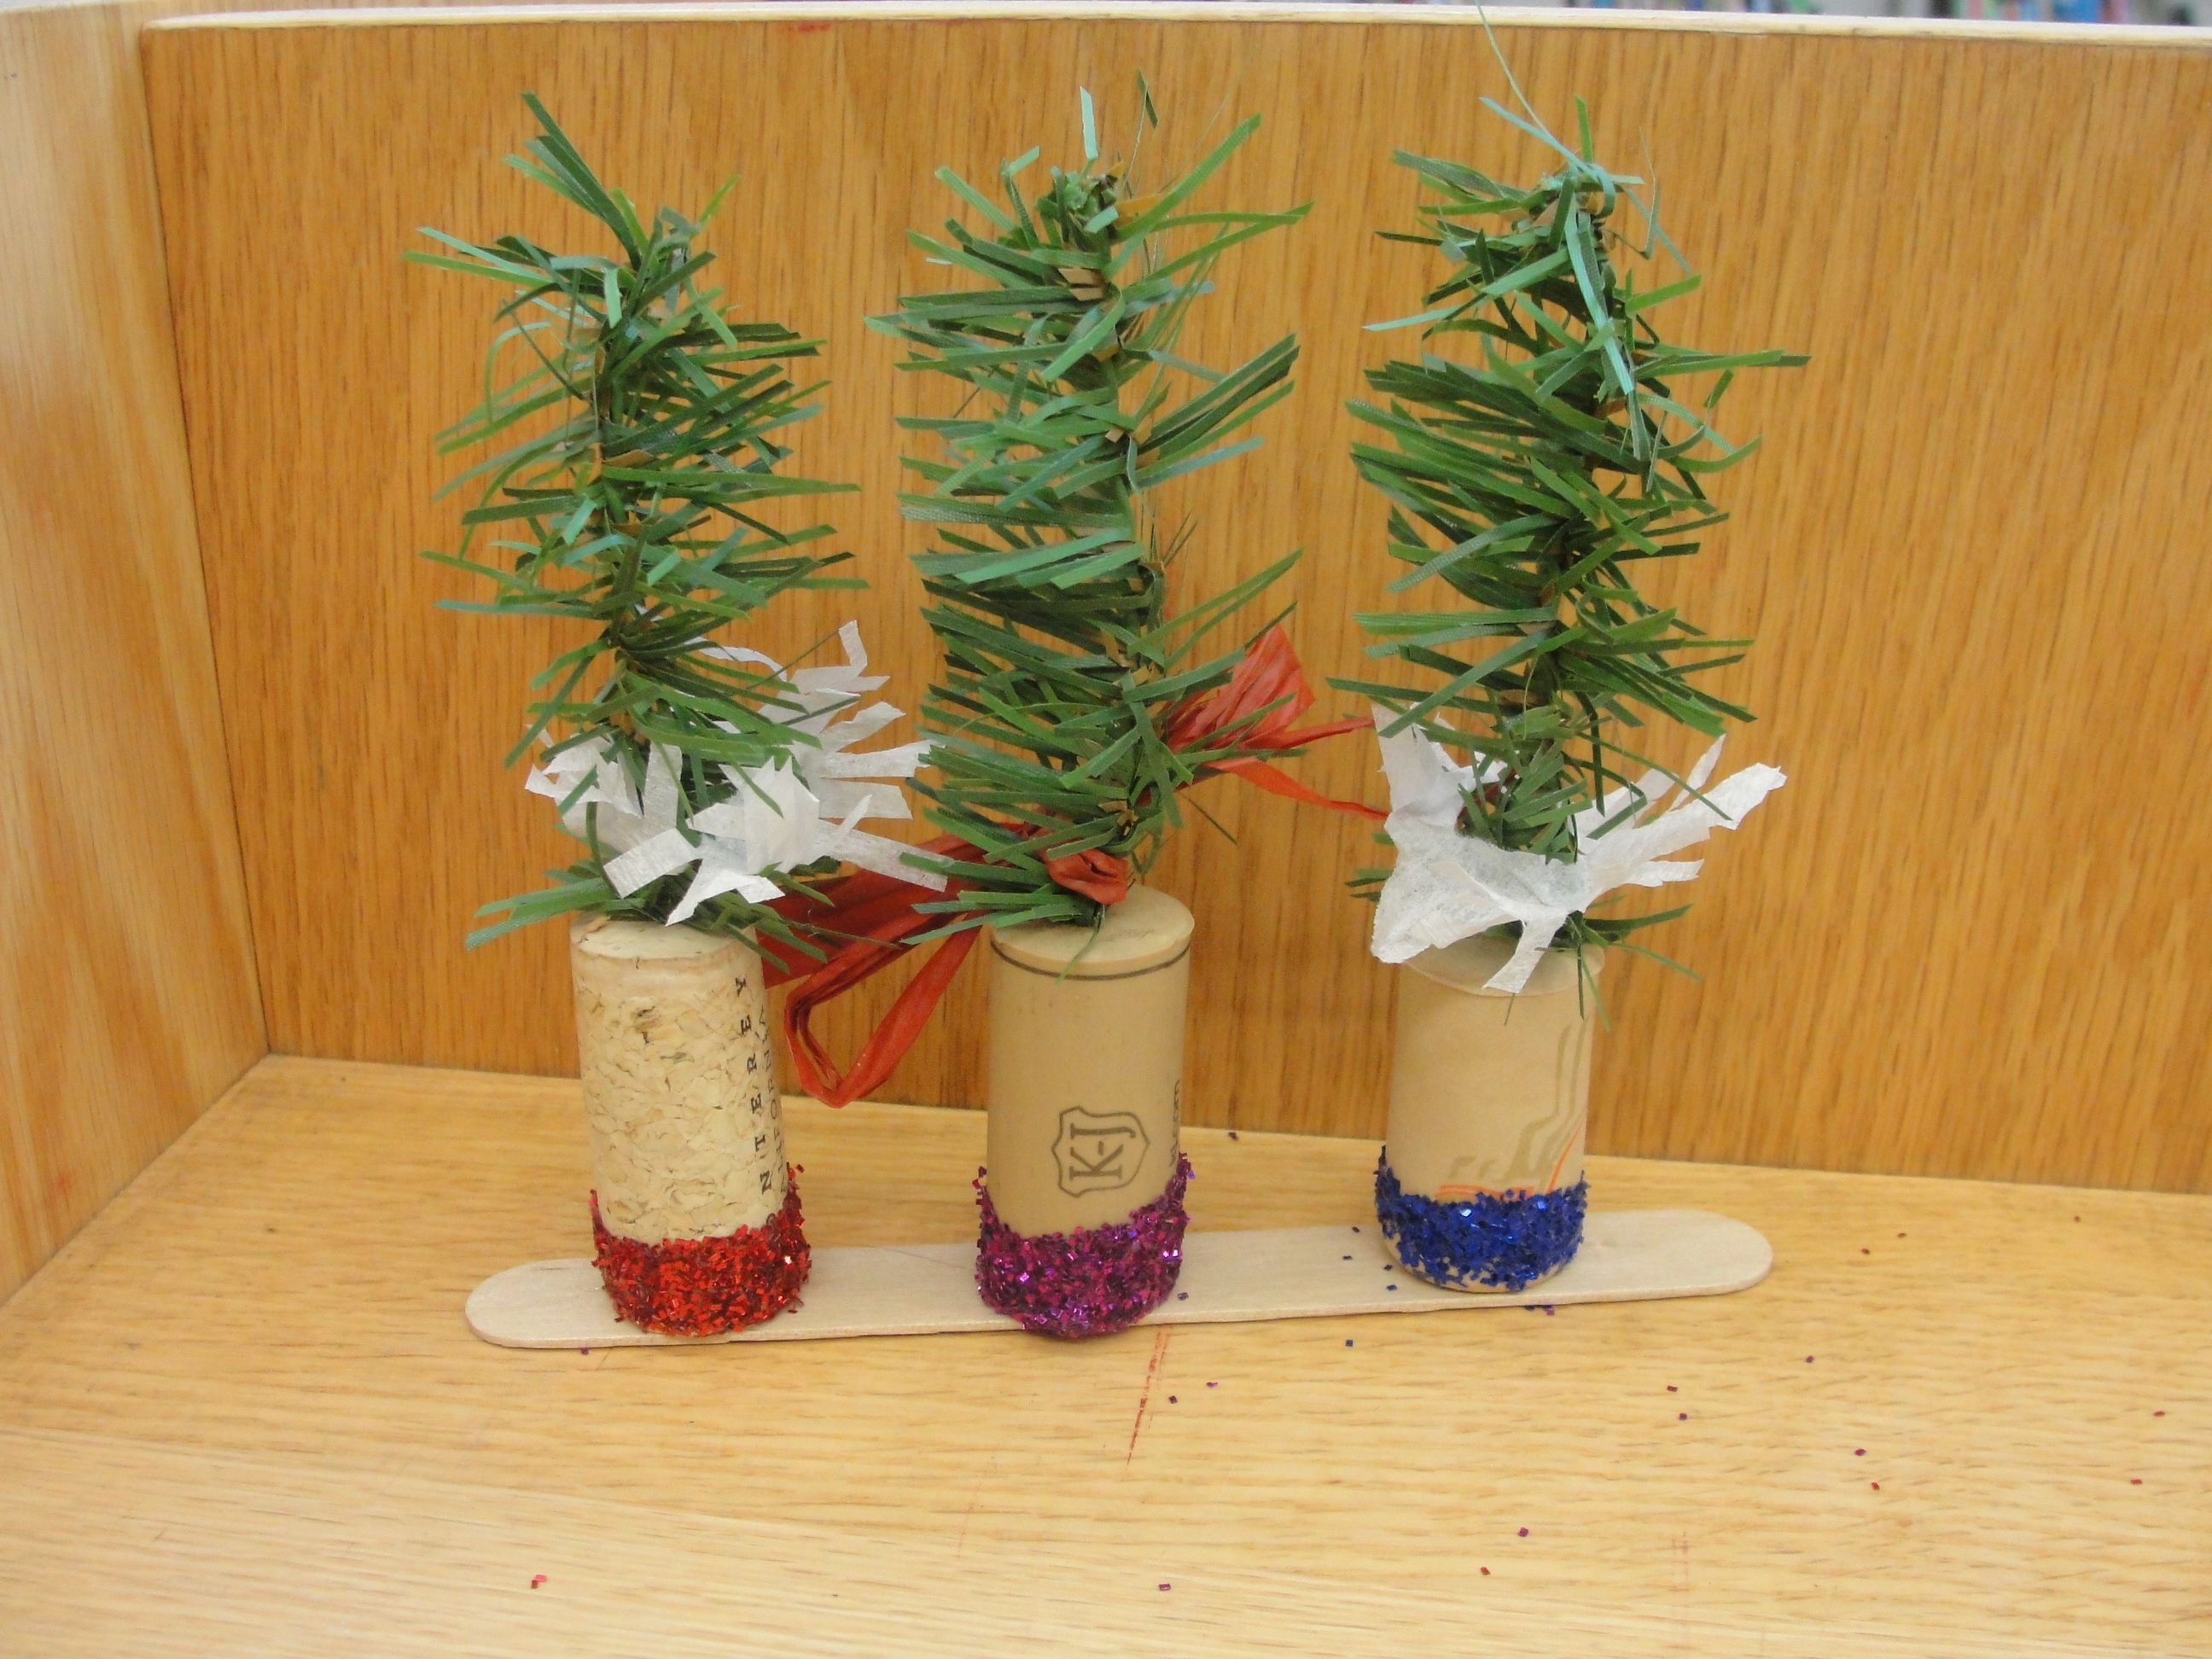 Mini cork trees - glitter on bottom, 3 mounted on a popsickle stick for easy transport